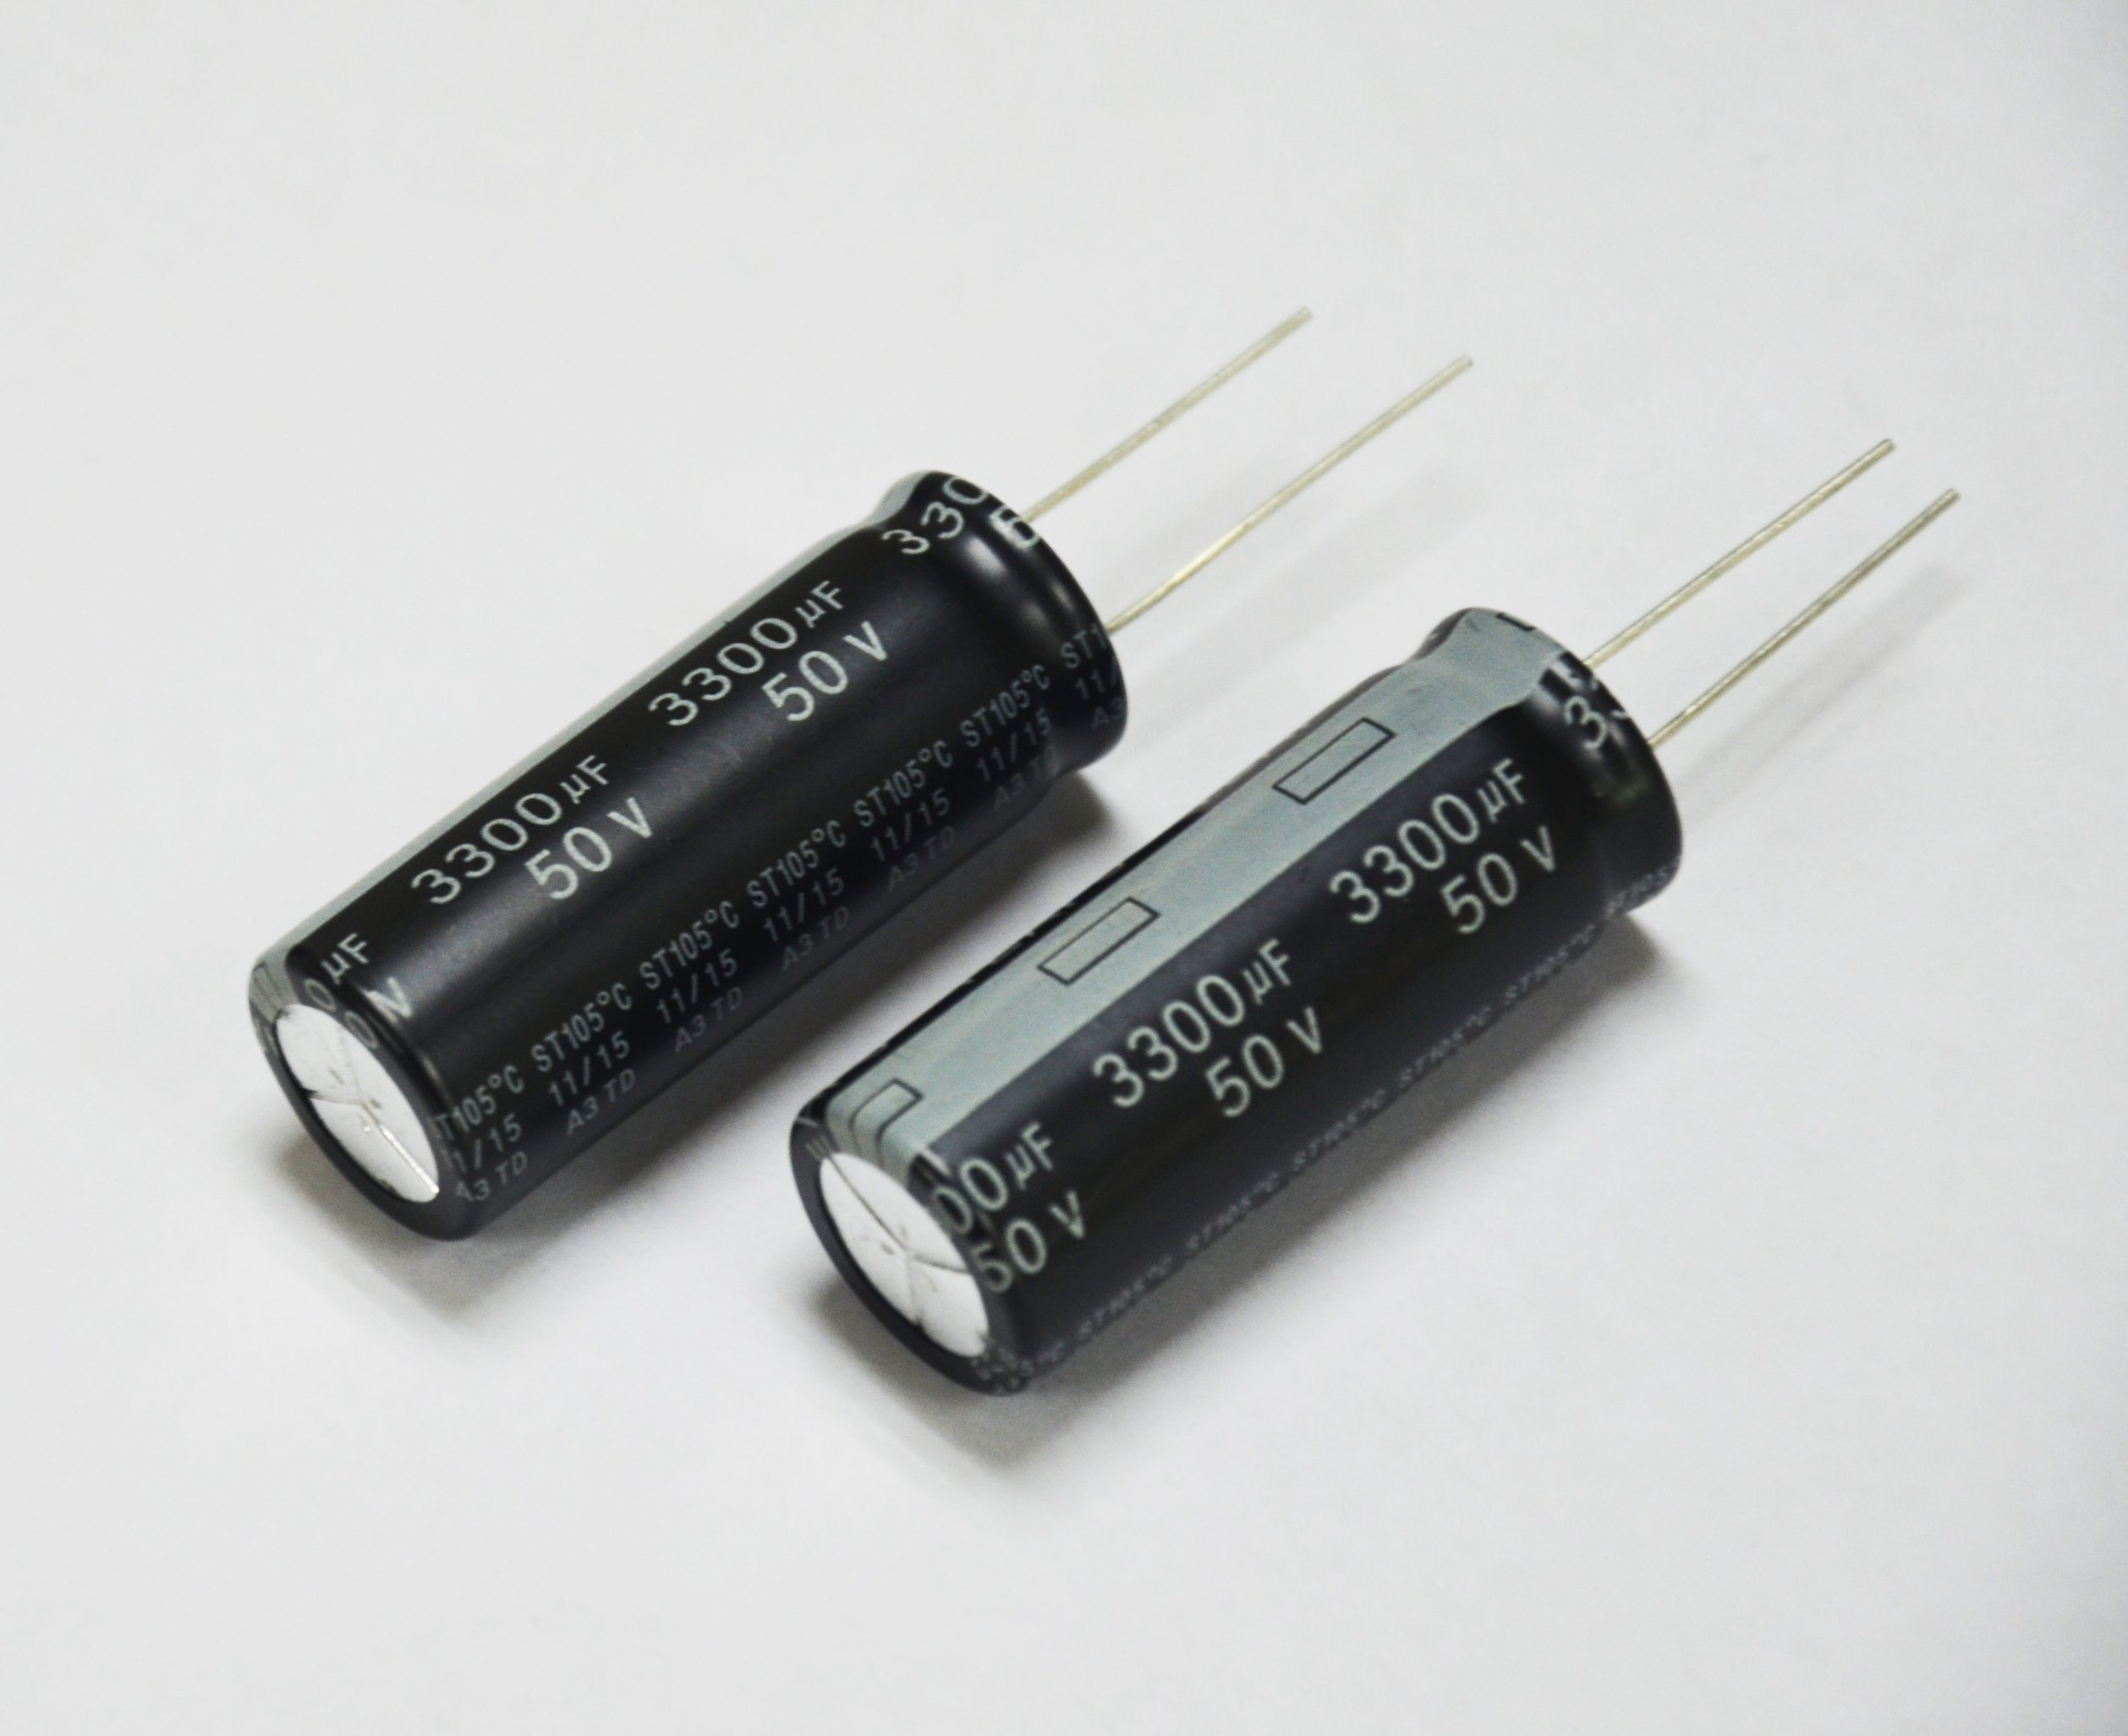 Compliance SL Aluminum Electrolytic Capacitor RoHS